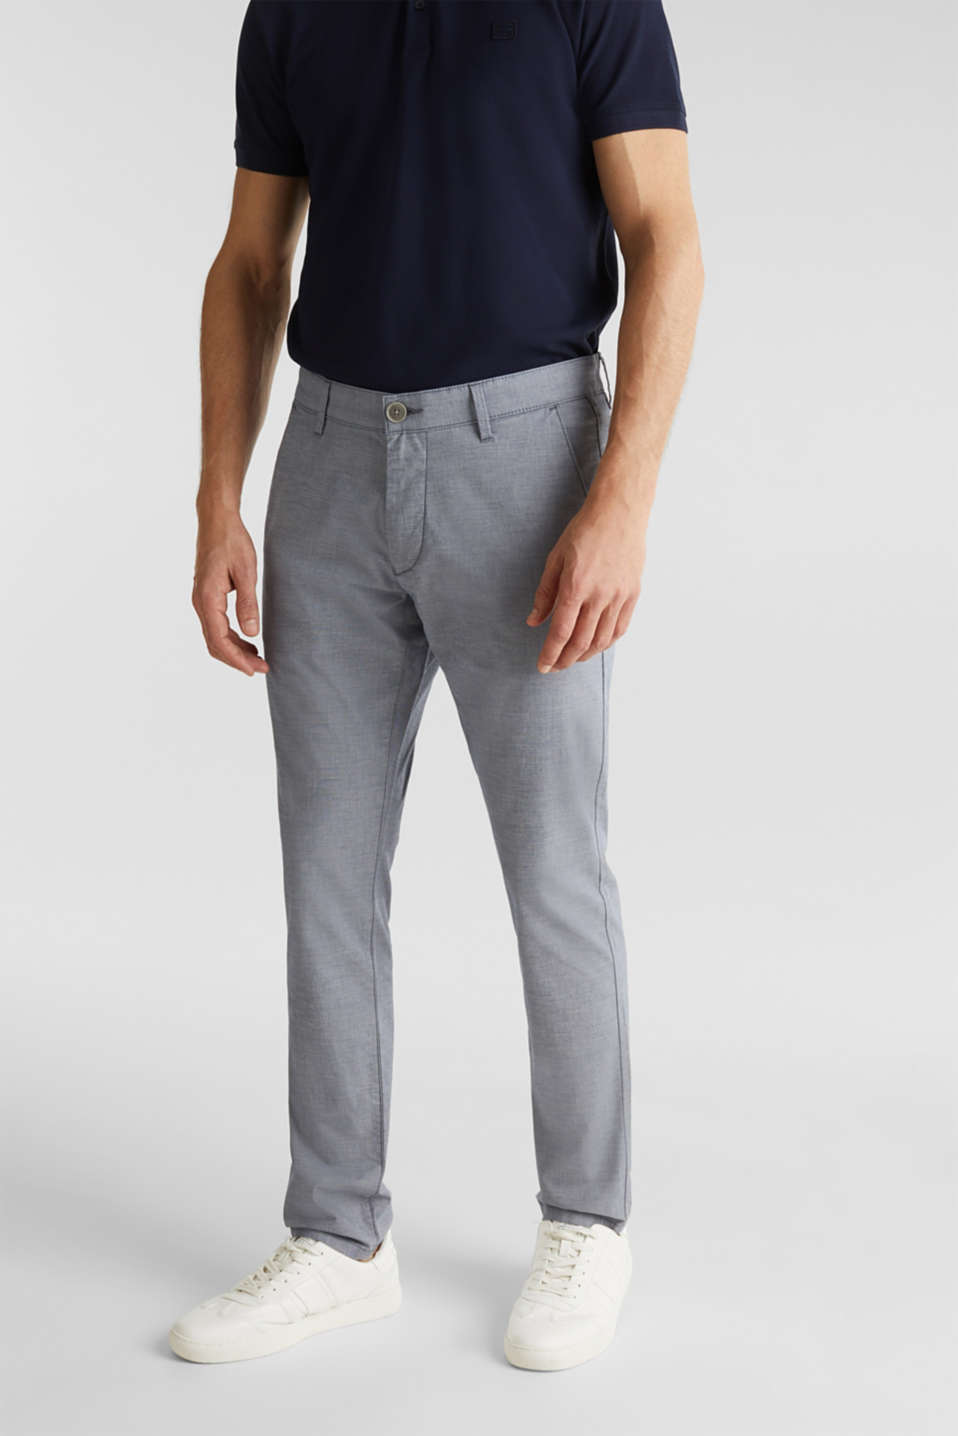 Esprit - Chambray-Chino aus Baumwoll-Stretch